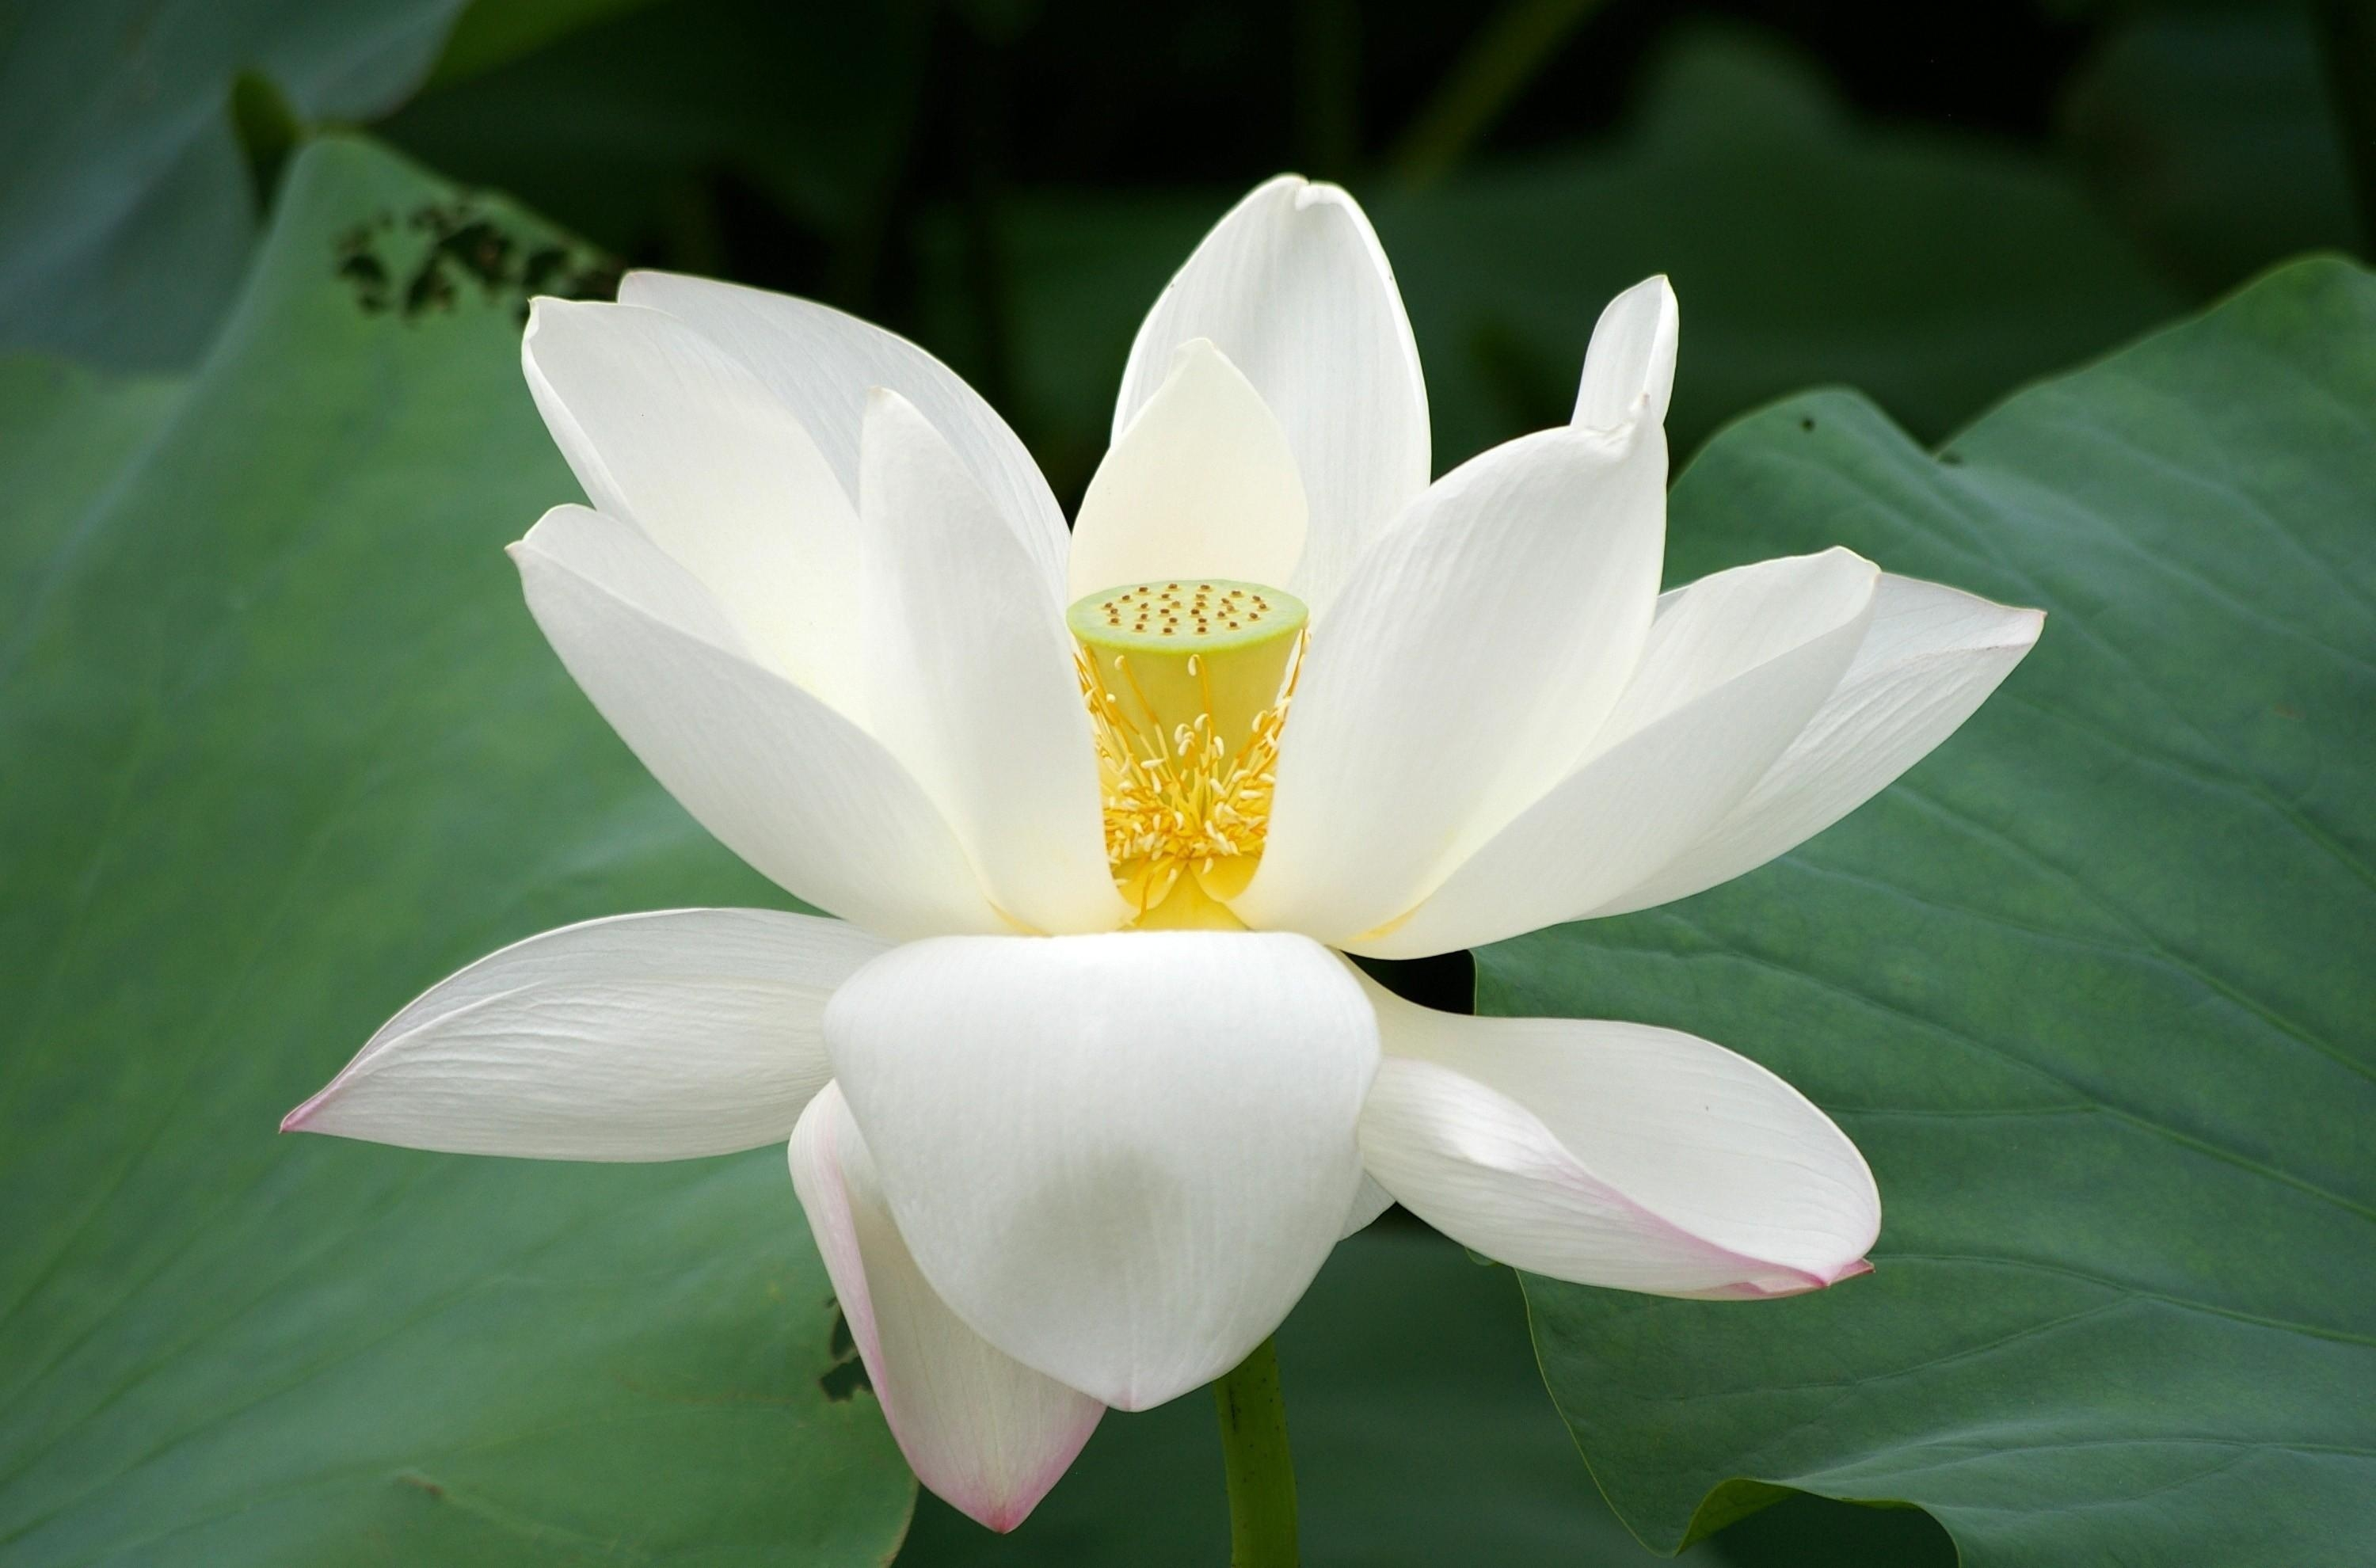 73991 download wallpaper Flowers, Lotus, Flower, Close-Up, Greens, Leaves screensavers and pictures for free